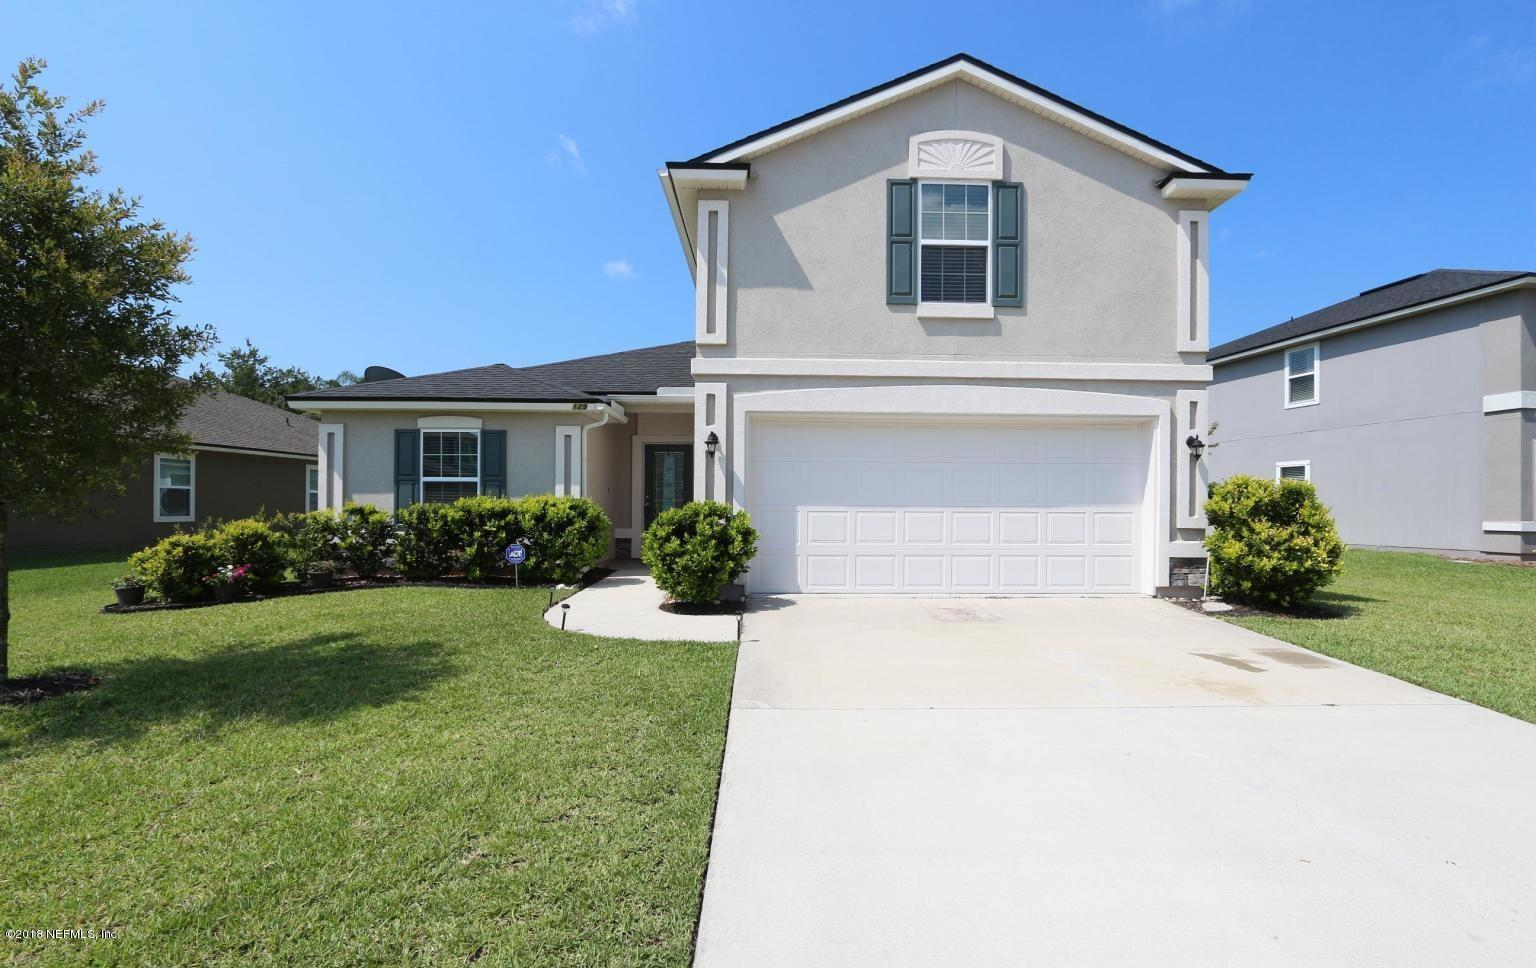 129 RIVER DEE, FRUIT COVE, FLORIDA 32259, 5 Bedrooms Bedrooms, ,3 BathroomsBathrooms,Residential - single family,For sale,RIVER DEE,965268